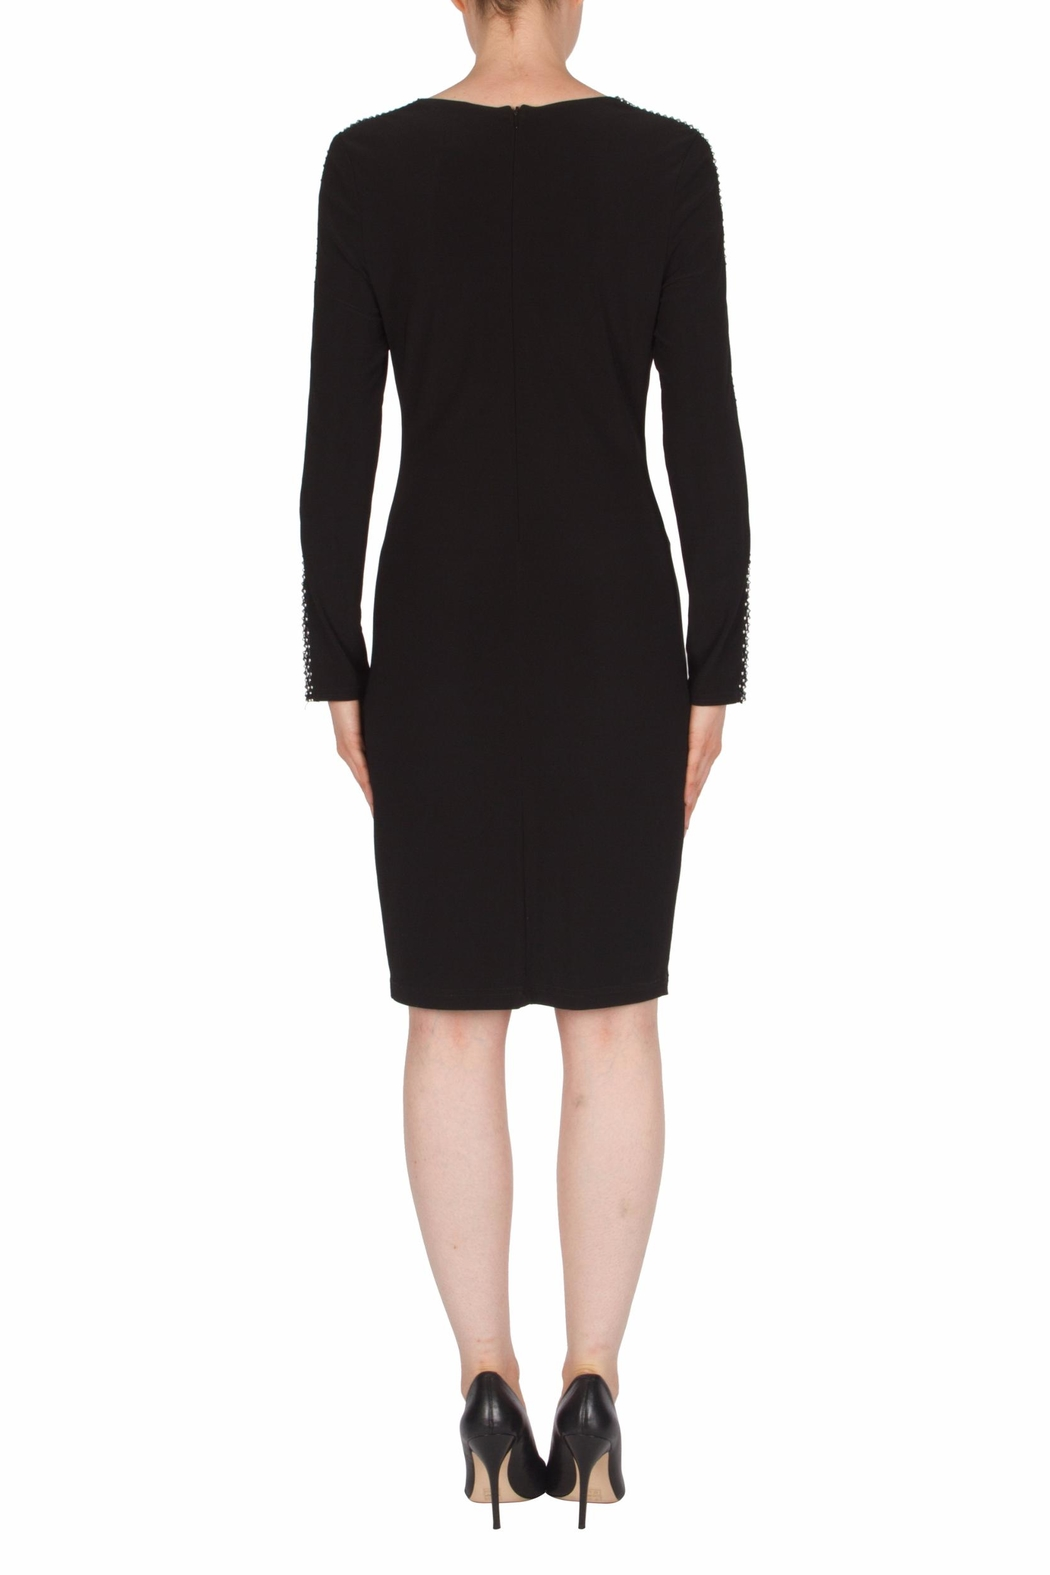 Joseph Ribkoff Mesh Sleeve Detail Dress - Side Cropped Image